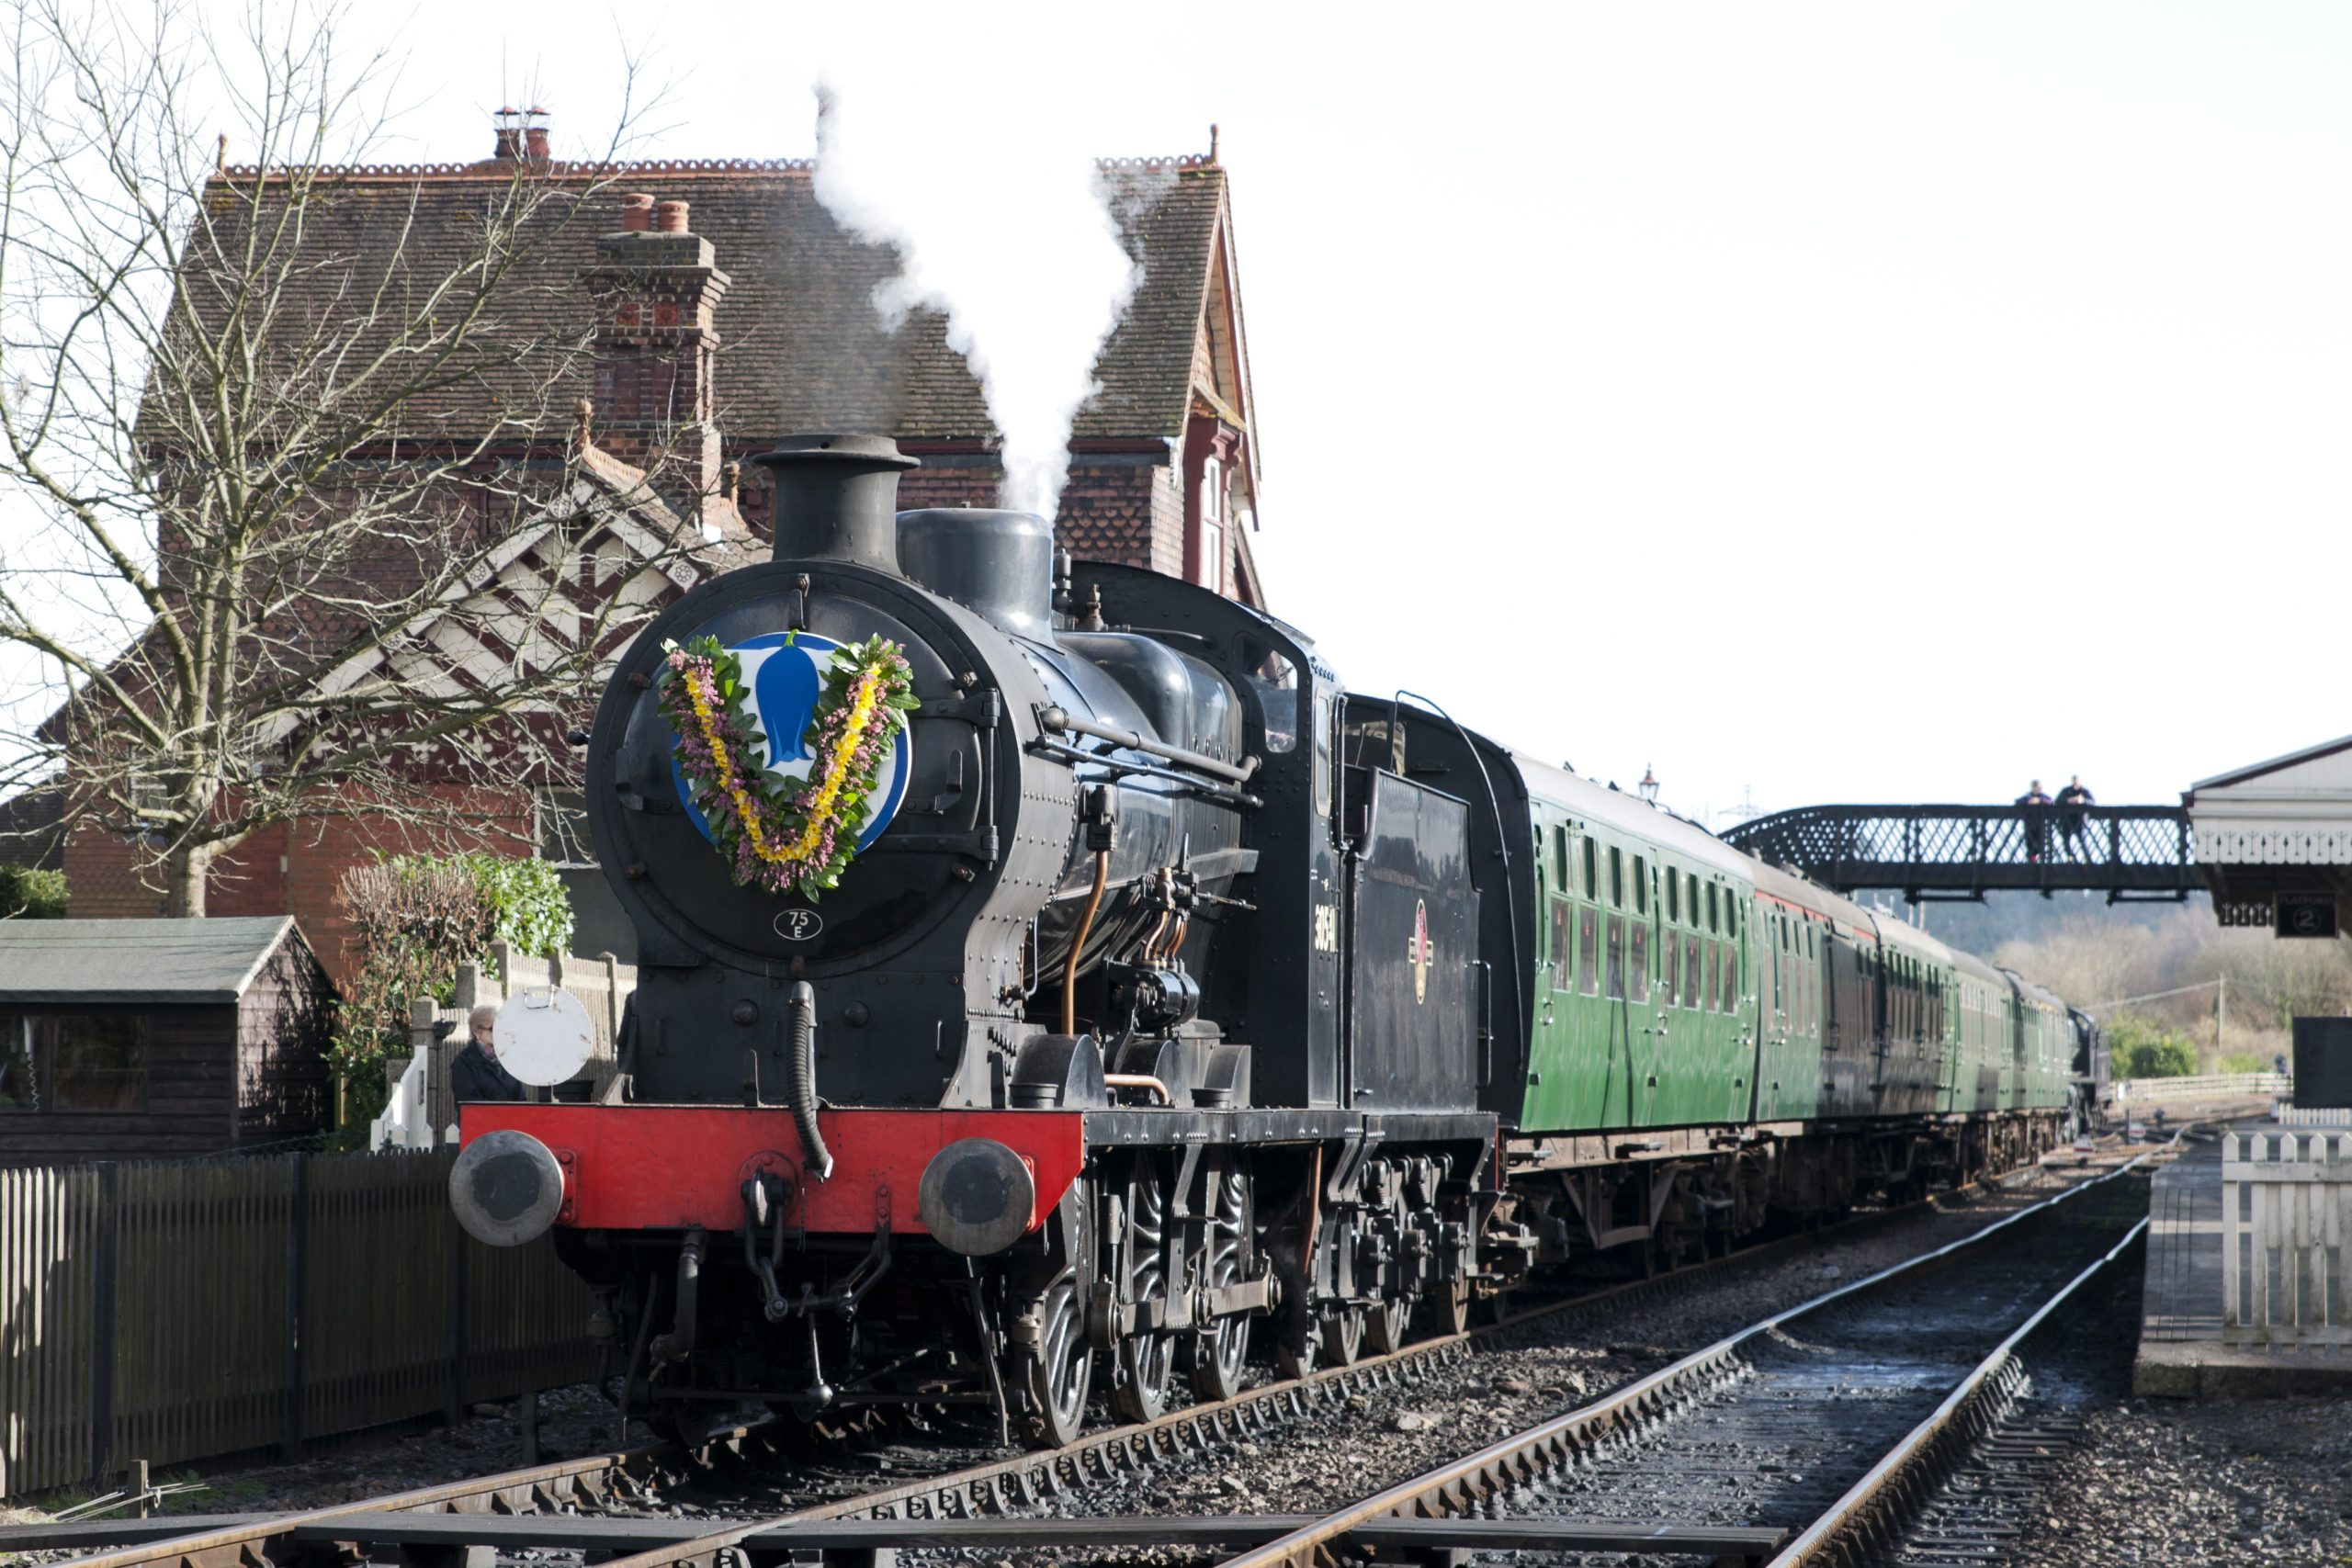 Bluebell Railway re-opening on 20 May